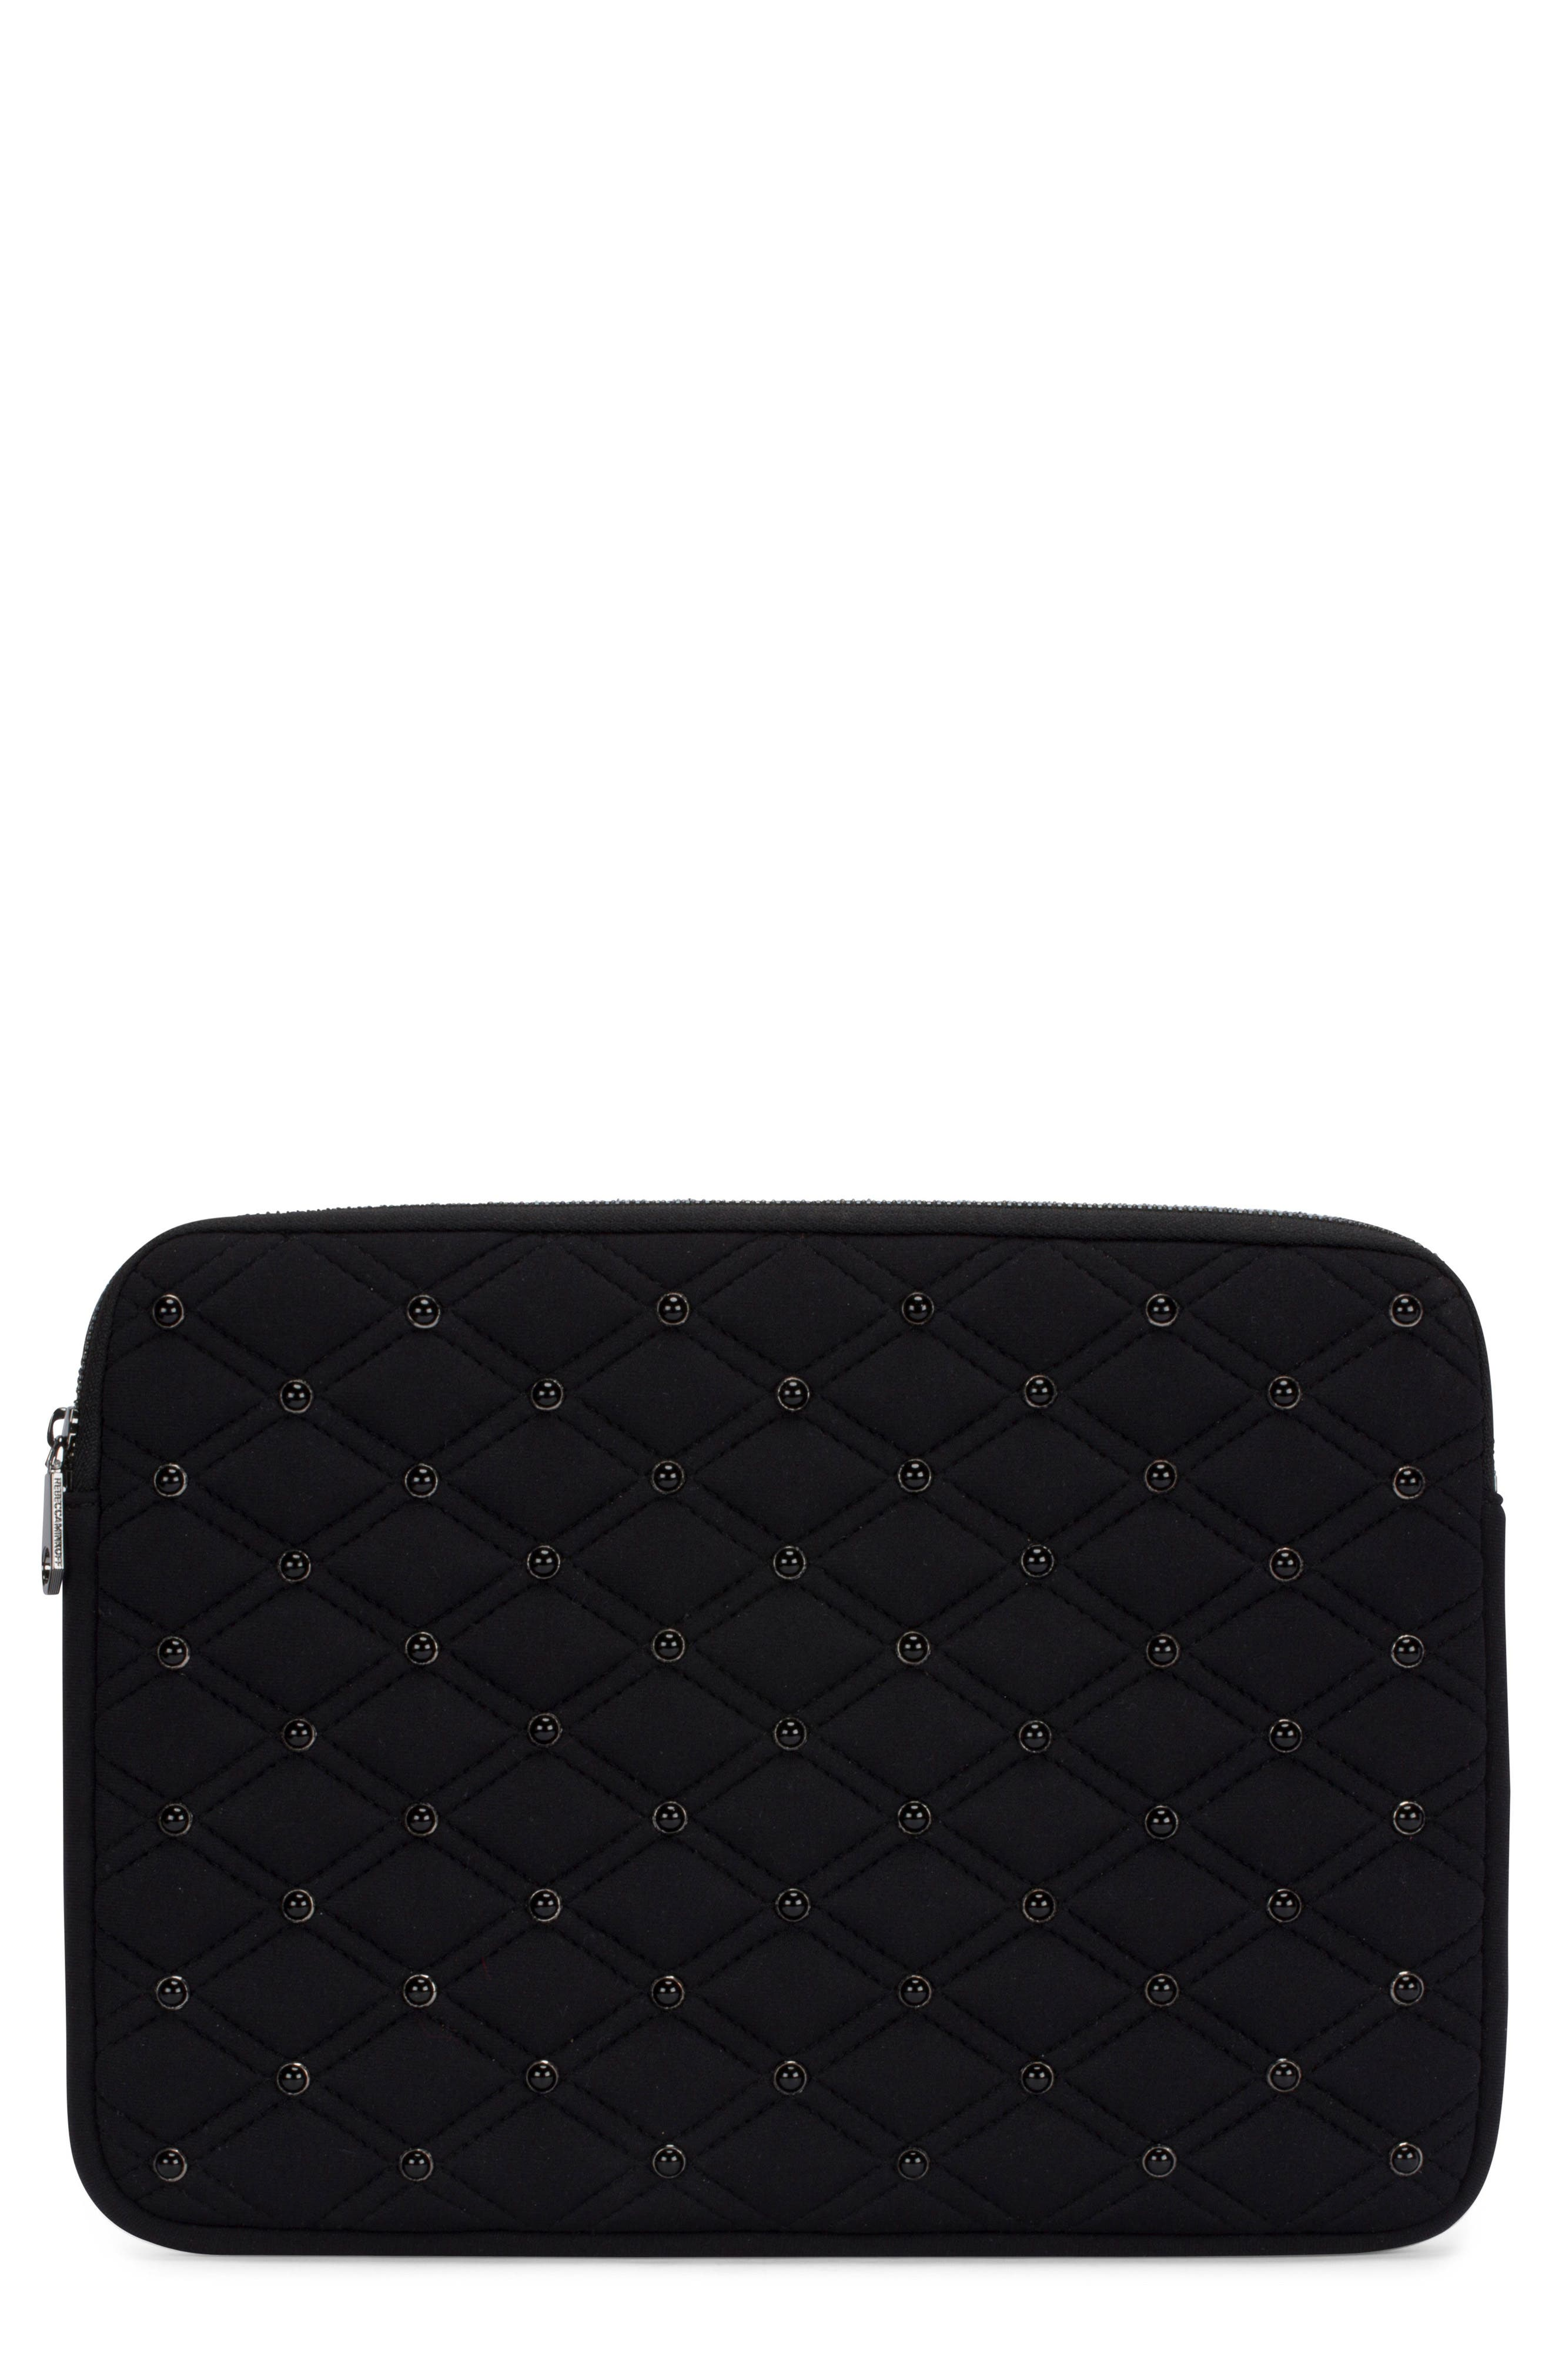 Quilted Stud Laptop Case,                             Main thumbnail 1, color,                             Black/ Black Pearl Studs